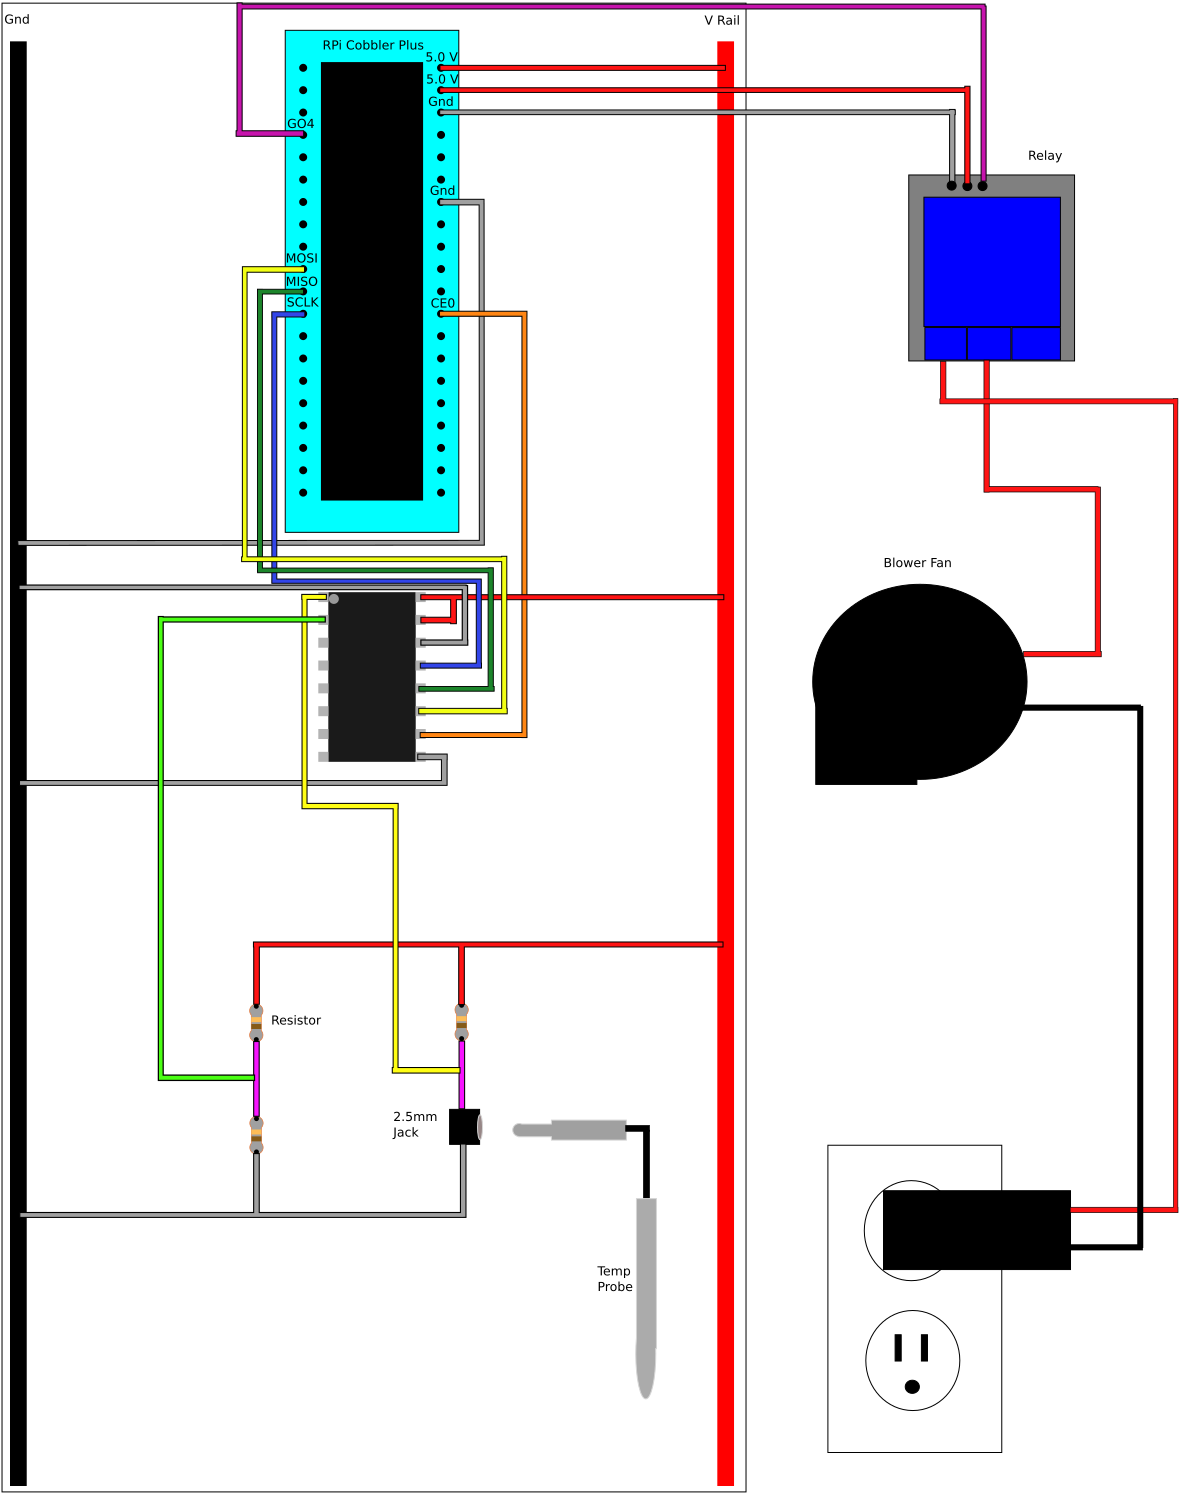 Github Jjohnson338 Grillkeeper A Webpage Controlled Smoker How 2 5mm Jack Wiring Diagram